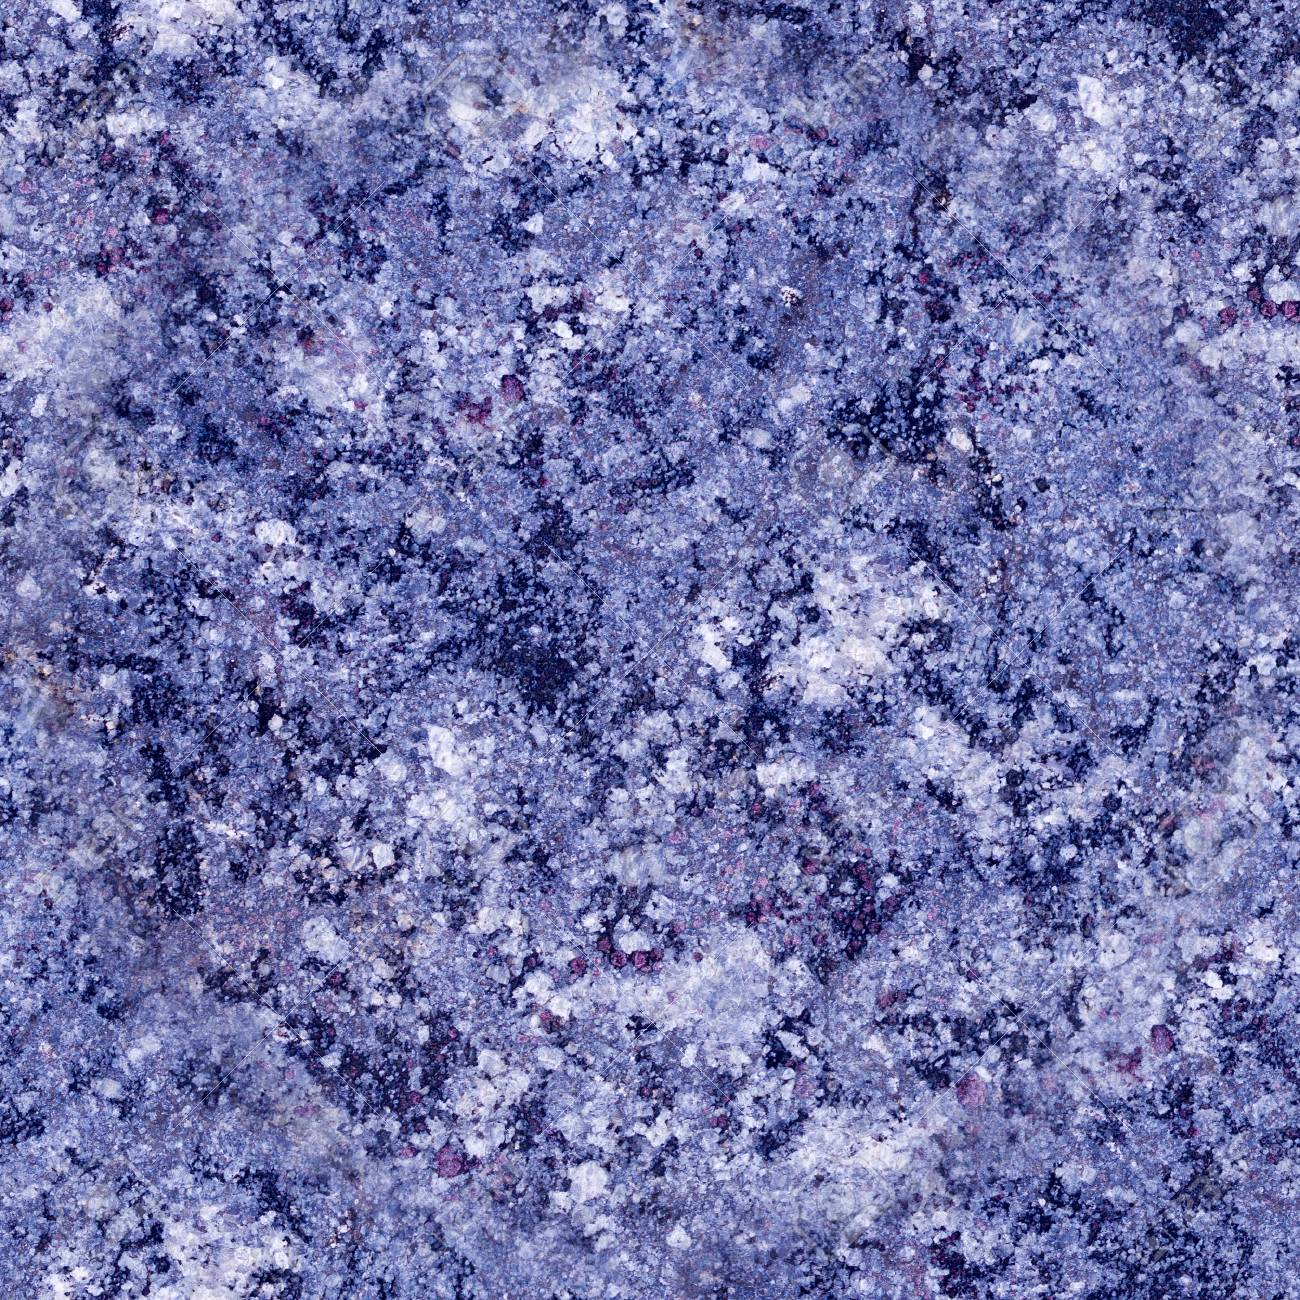 Seamless Grey Blue Granite Stone Background Architecture Texture Stock Photo Picture And Royalty Free Image Image 113604837